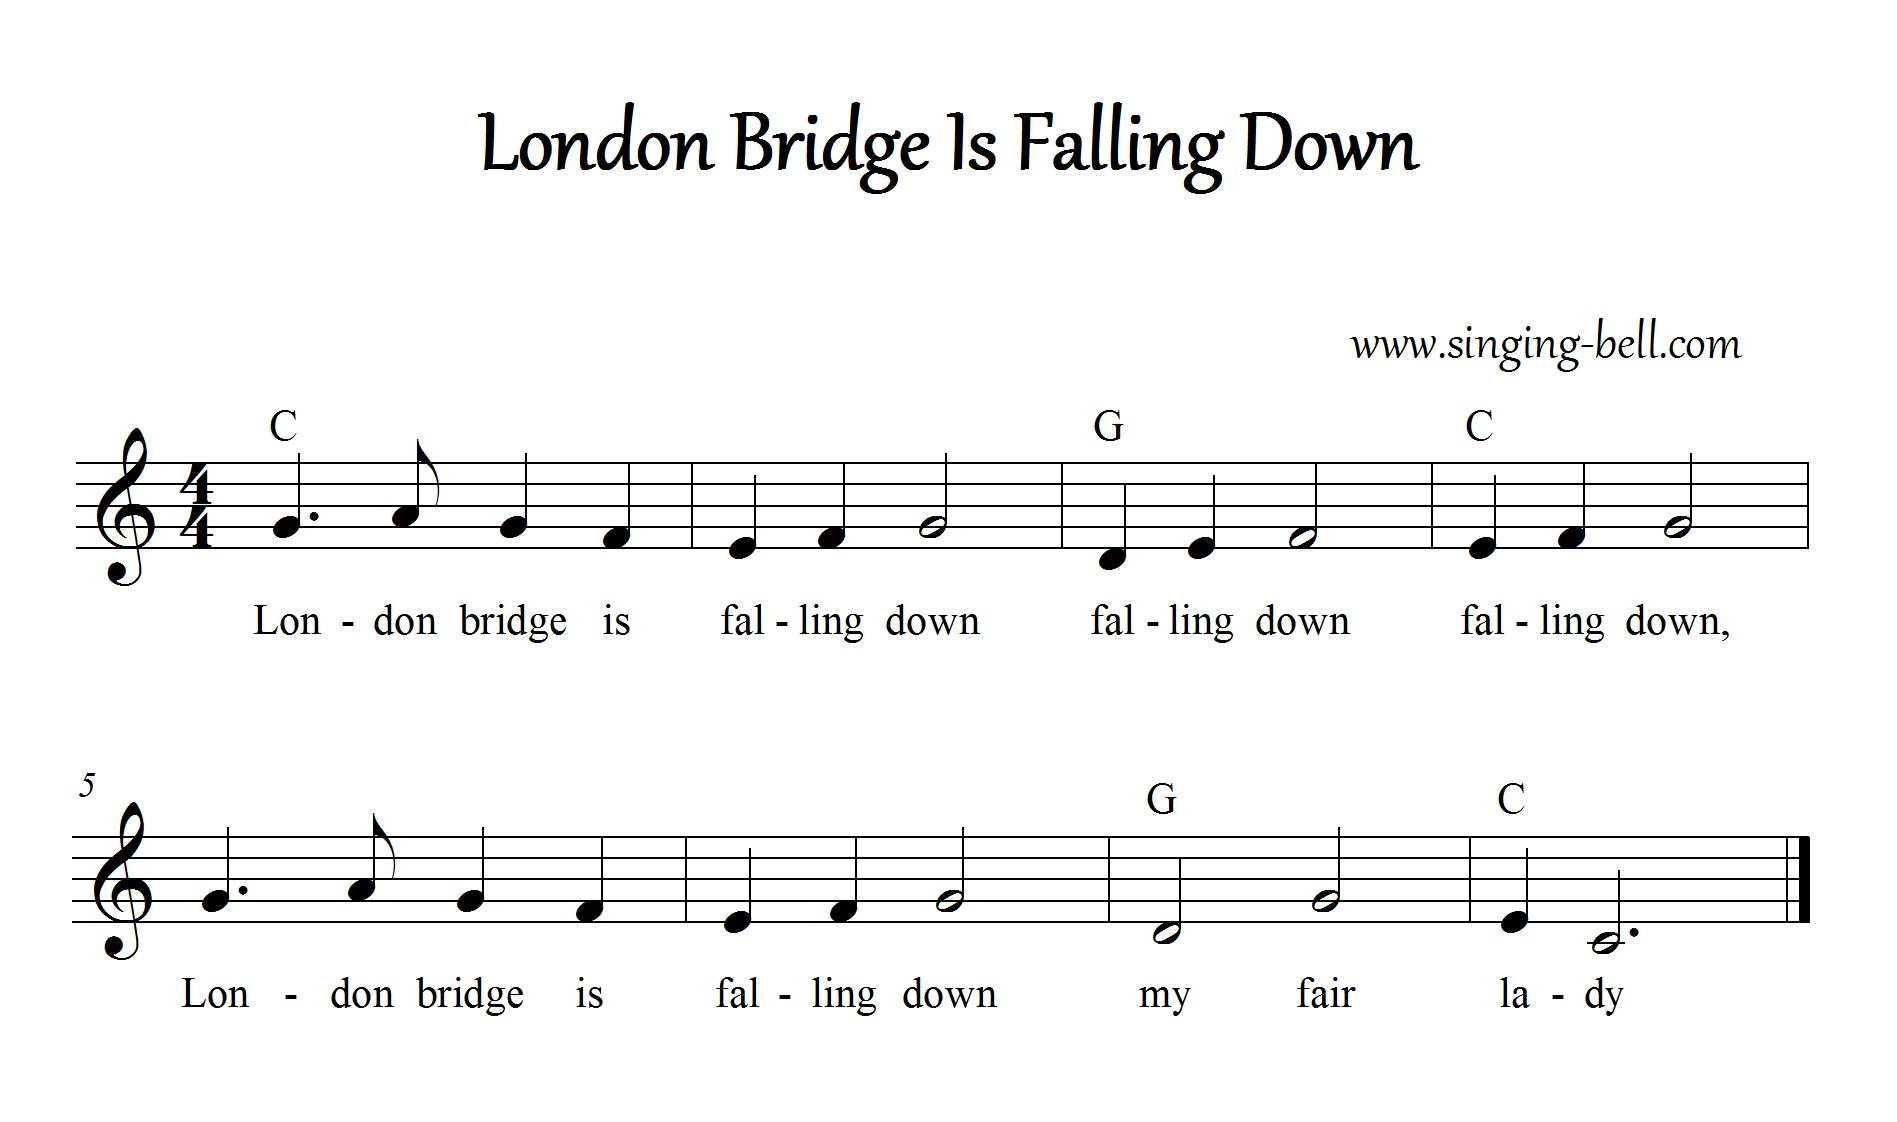 London Bridge Is Falling Down Instrumental Nursery Rhyme - Free Music Score Download